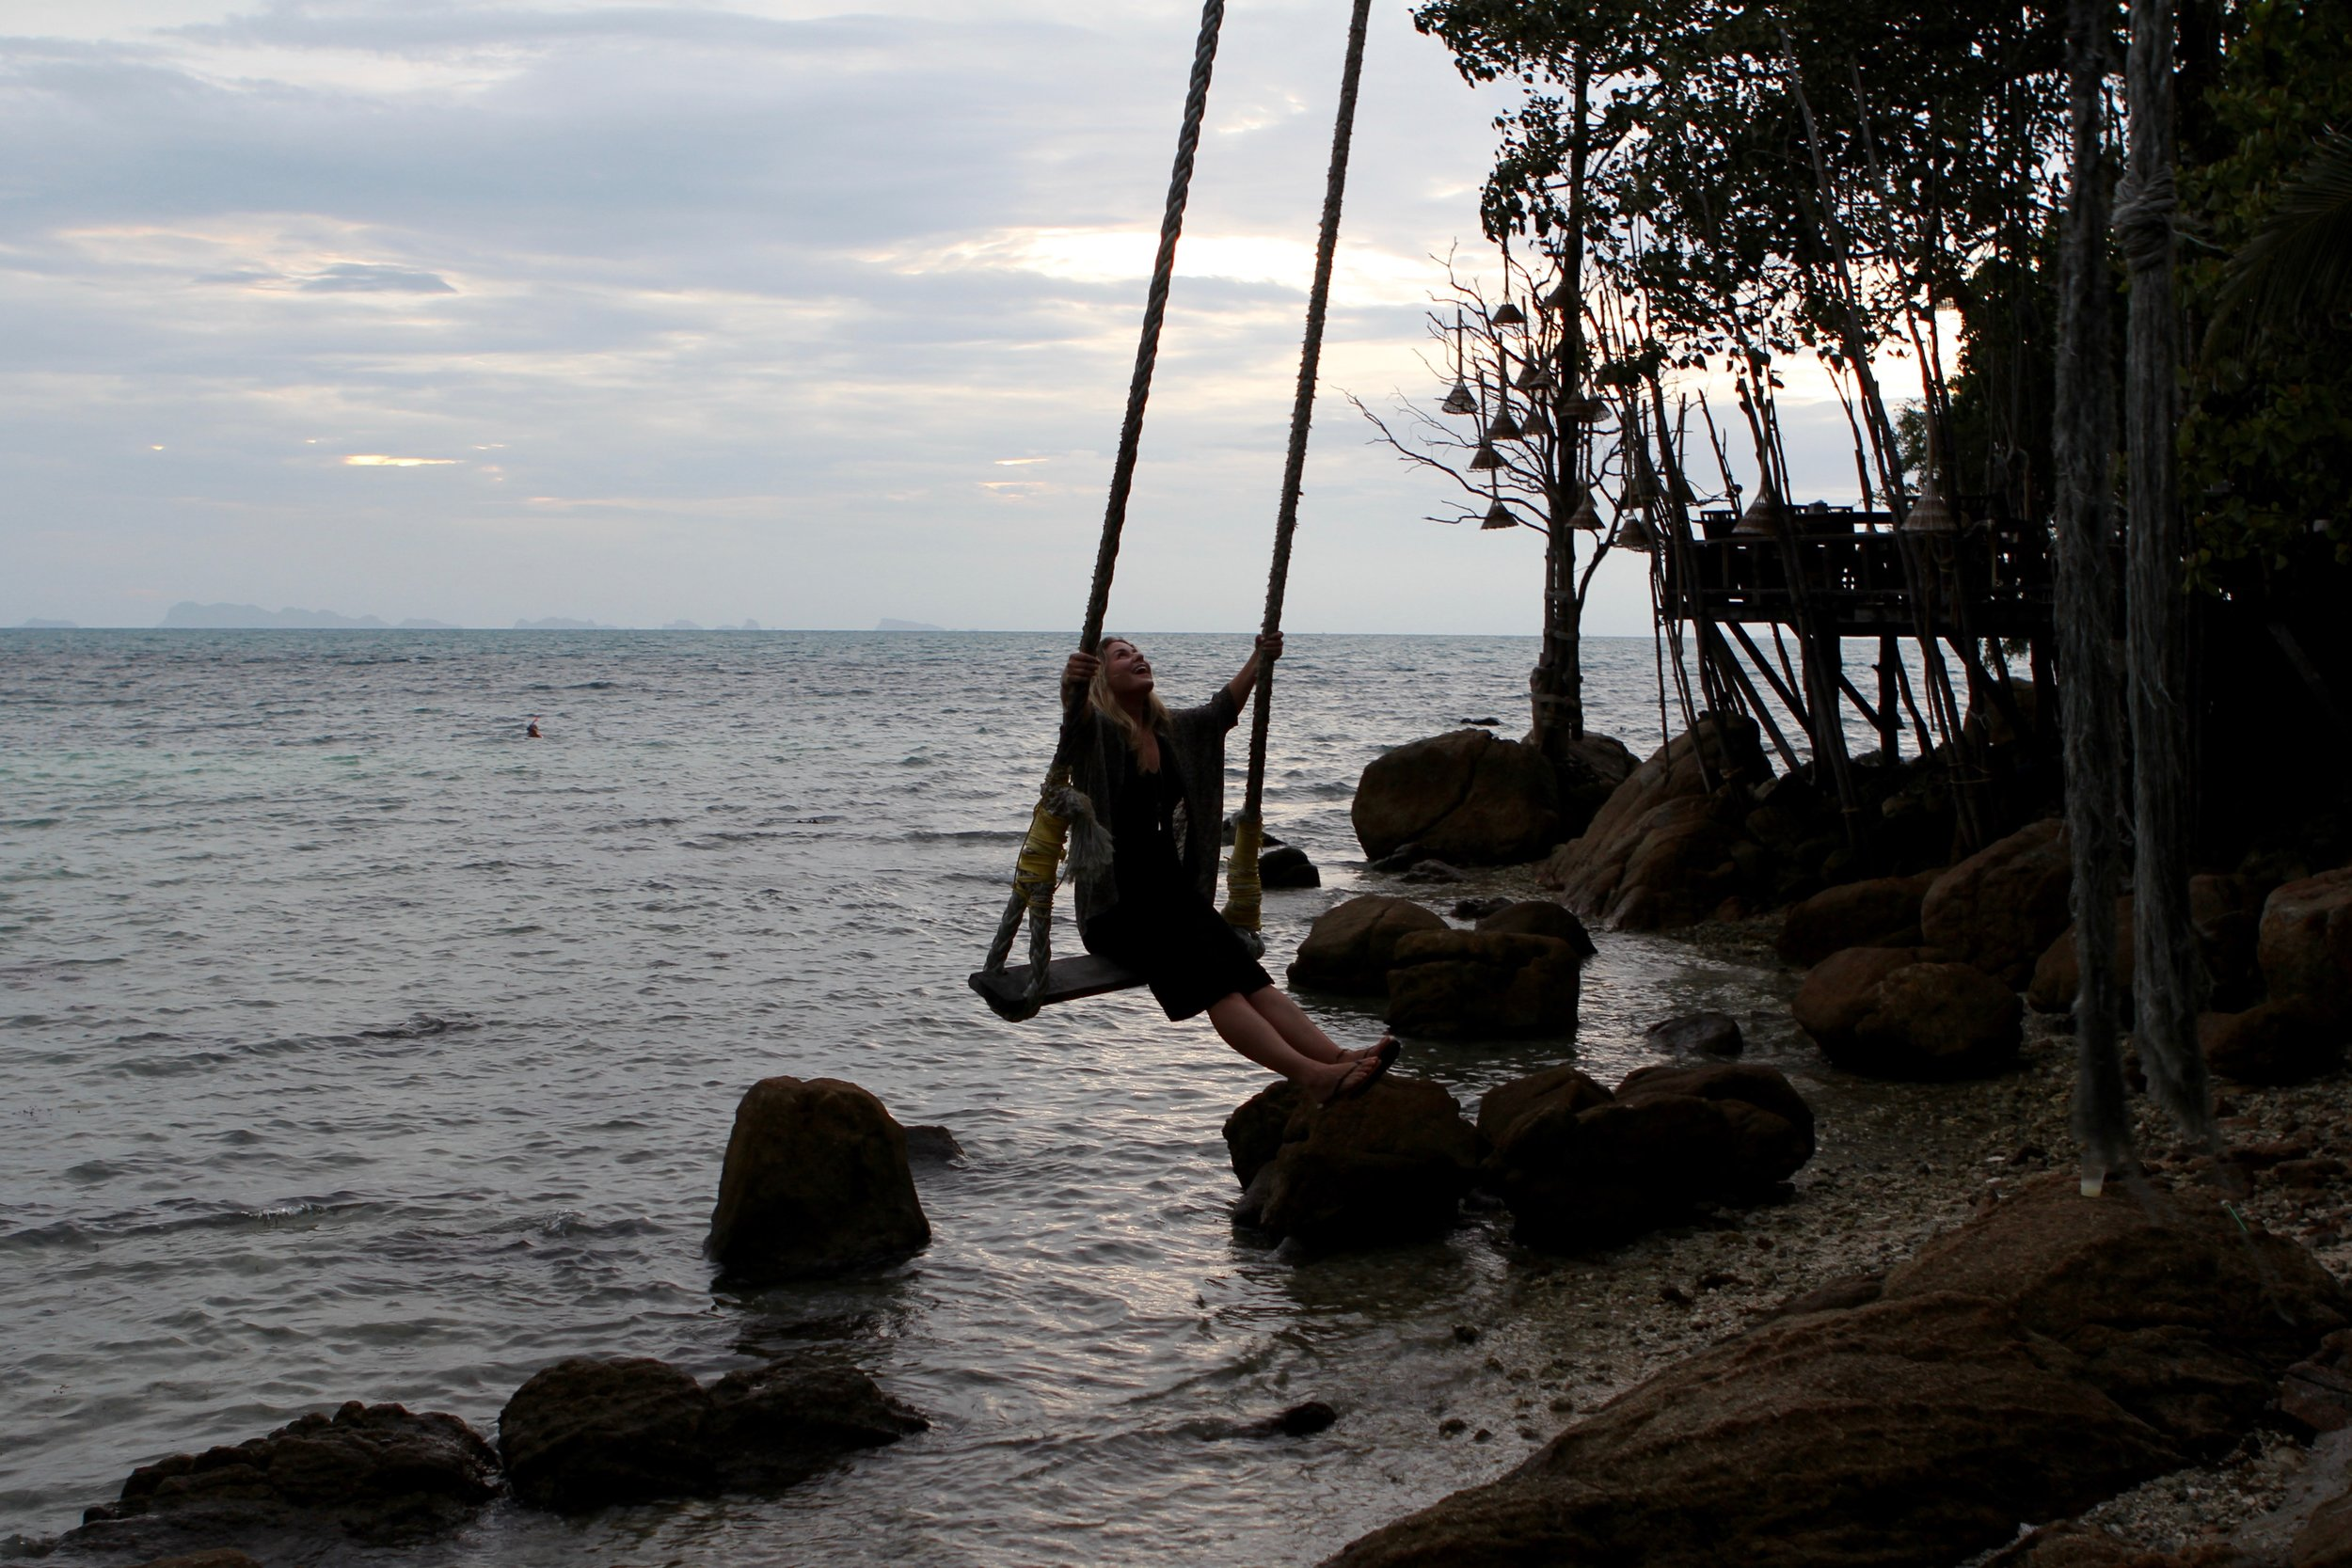 Me on a swing  Because of course Thailand's beaches would have swings